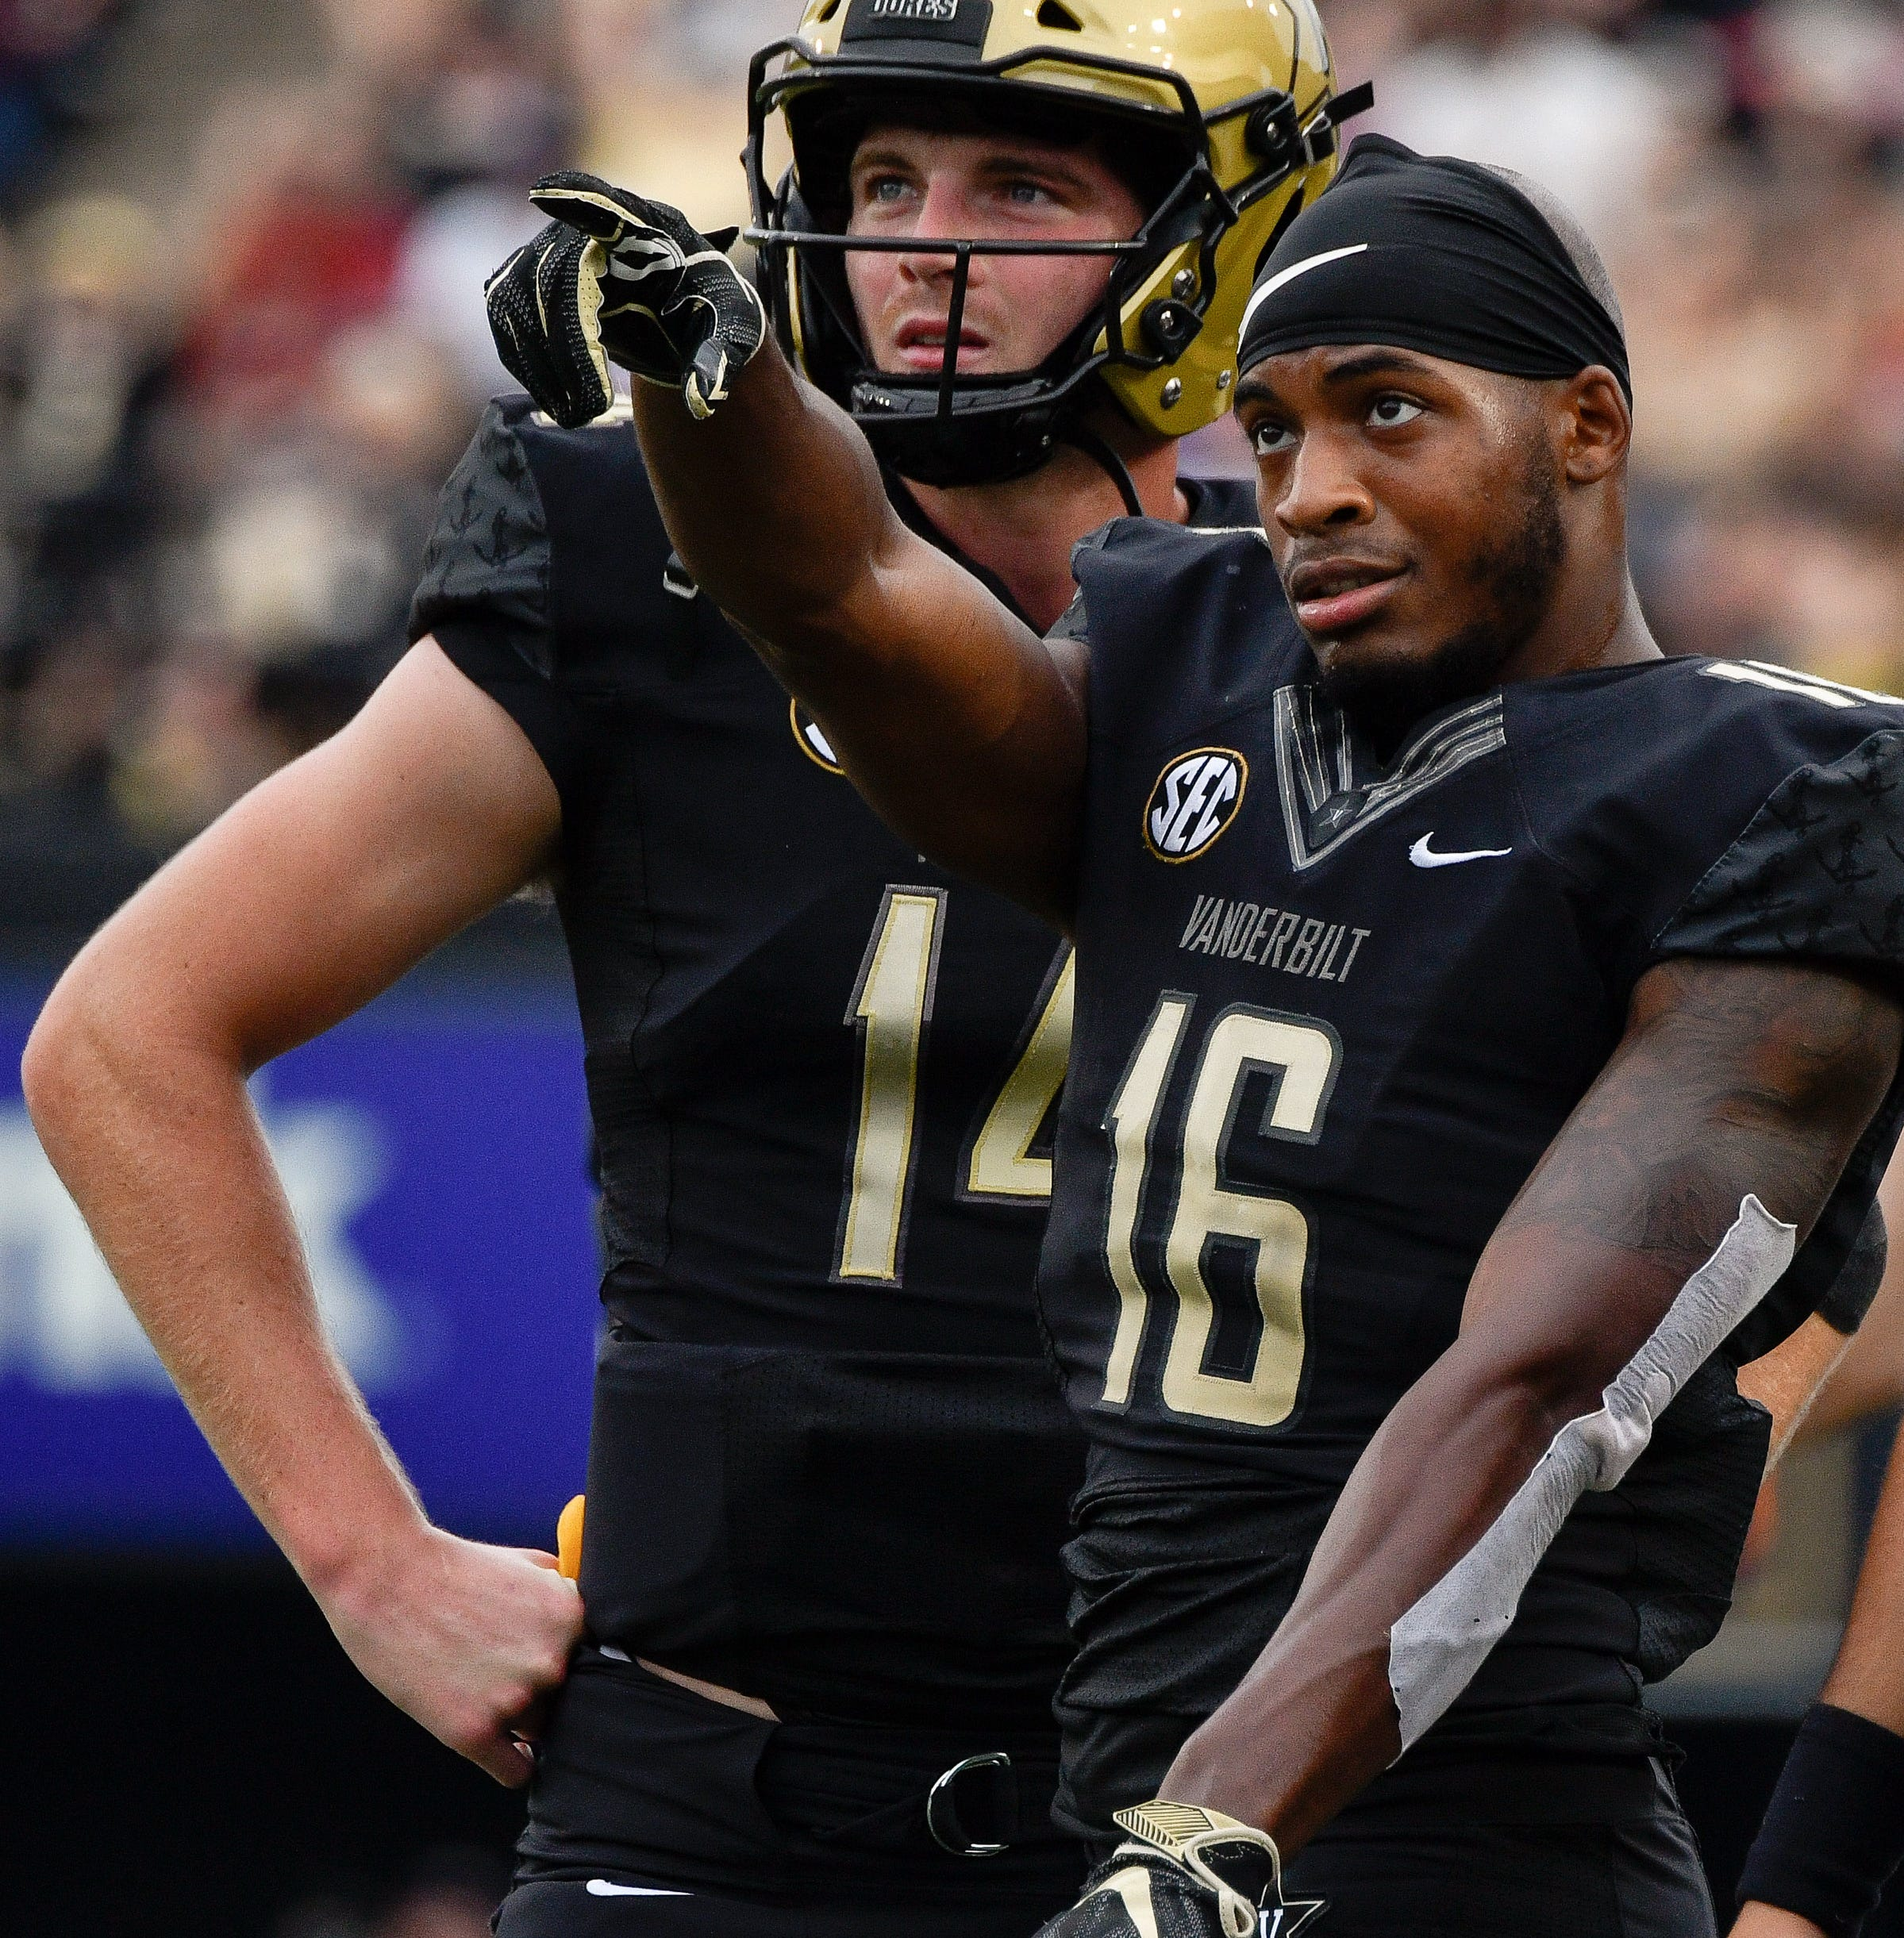 Did Kyle Shurmur miss an open Kalija Lipscomb? 'Maybe, maybe not'